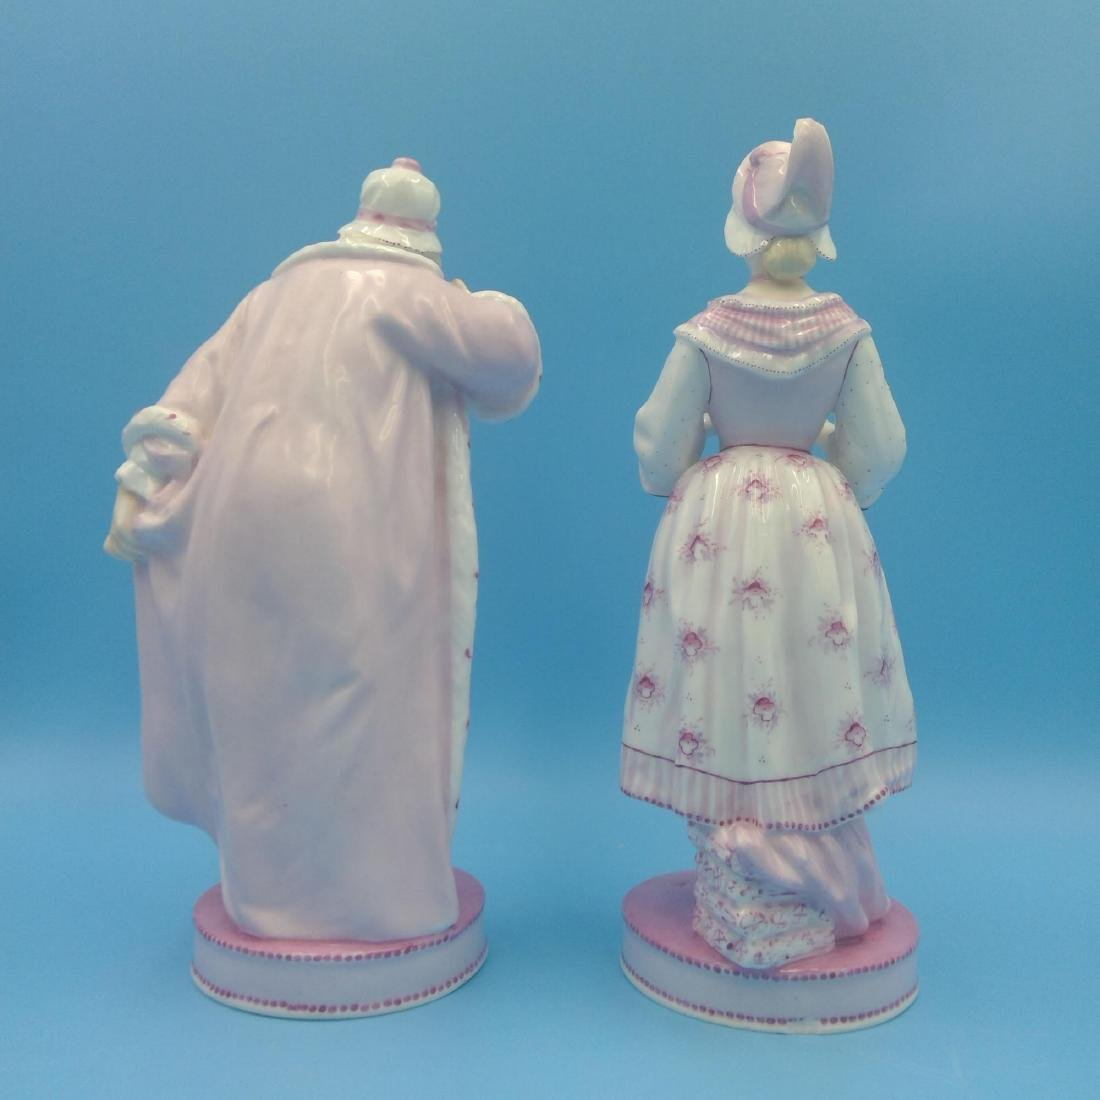 PAIR OF 19thC FRENCH VION & BAURY FIGURINES - 3